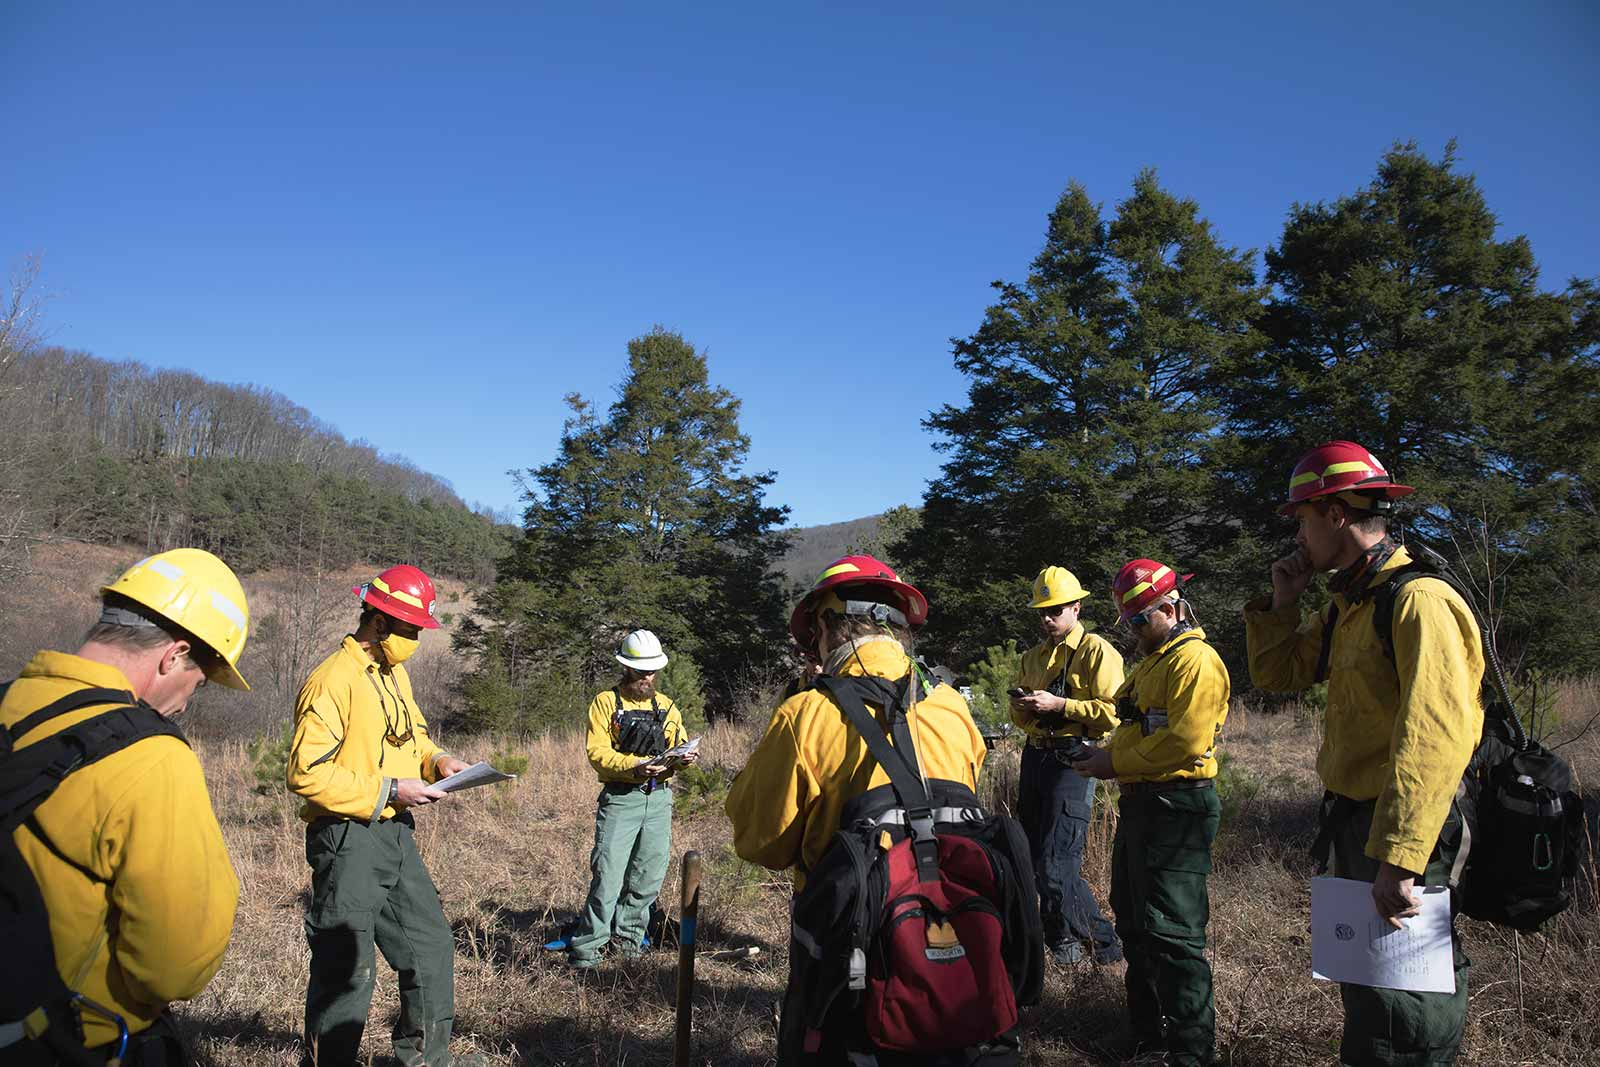 A fire crew meets to go over the day's prescribed burn plan.